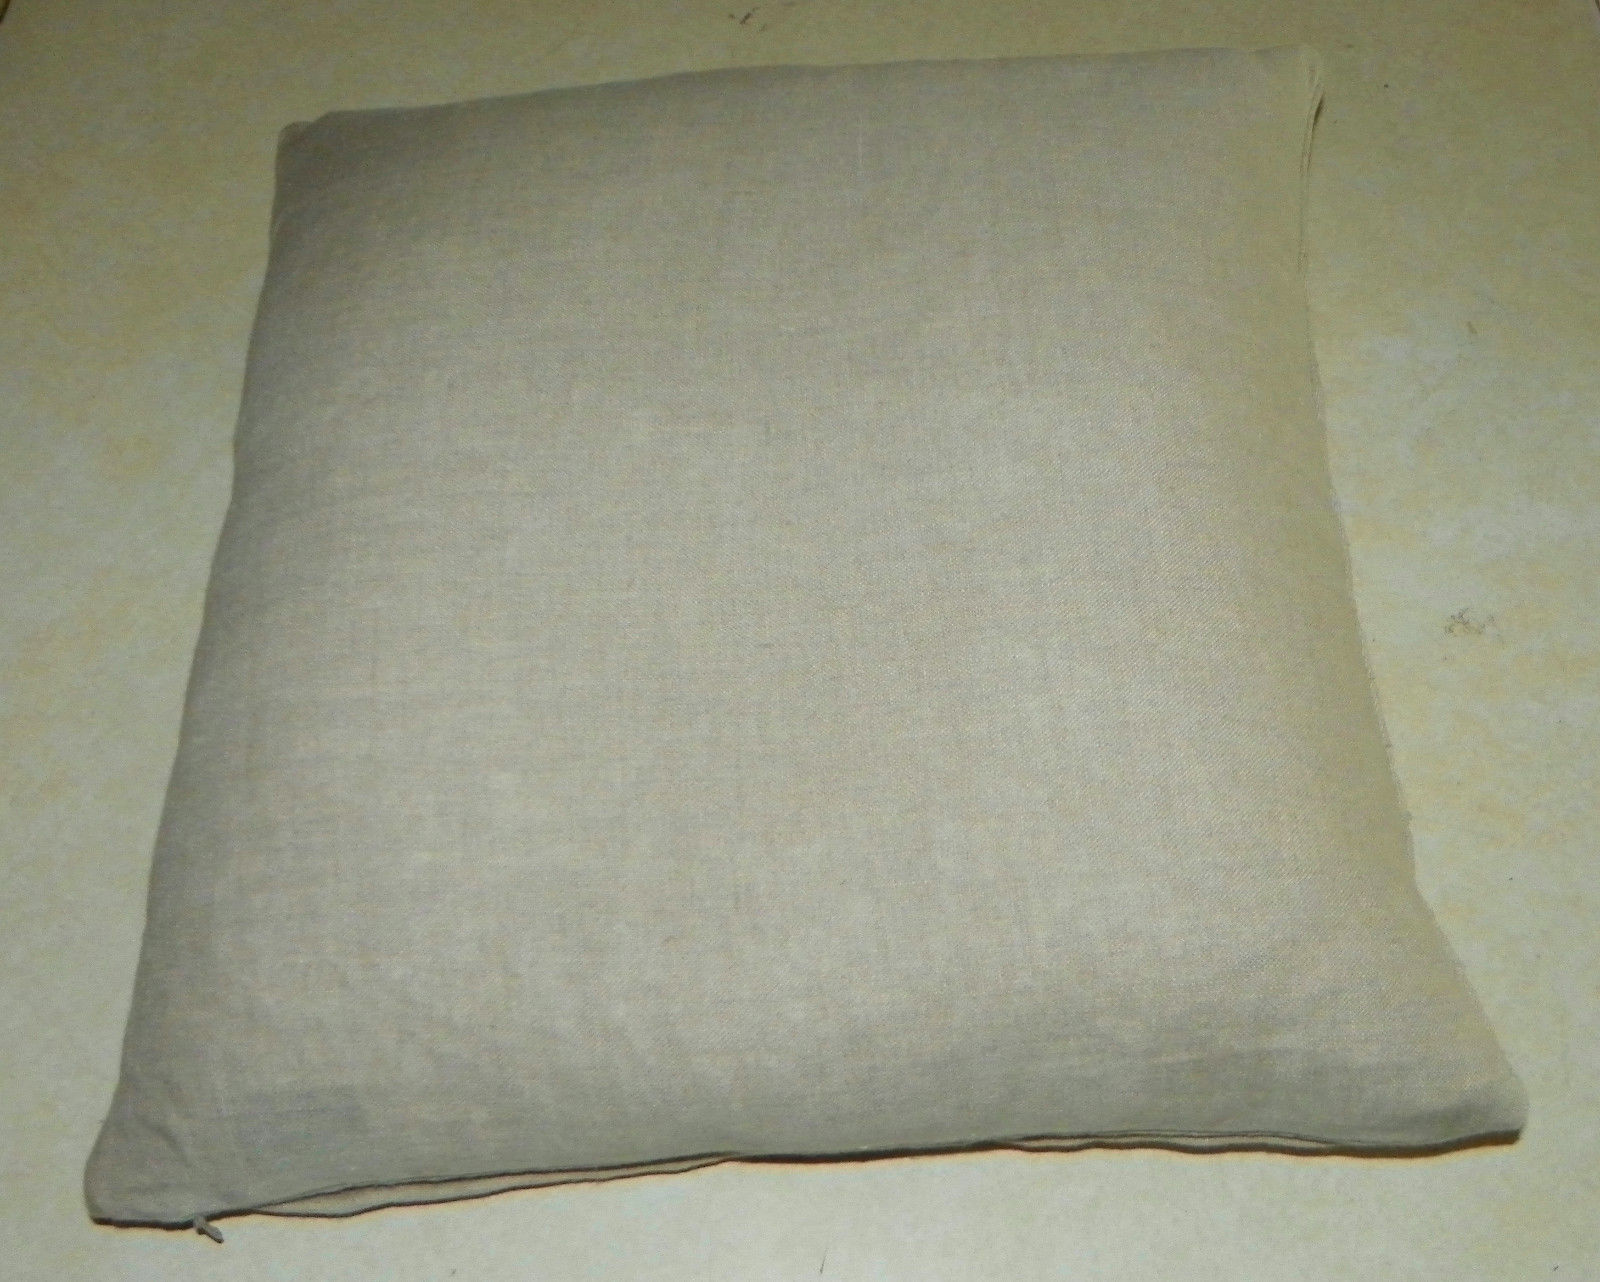 Beige Pleated Down Filled Decorative Throw Pillow  18 x 18